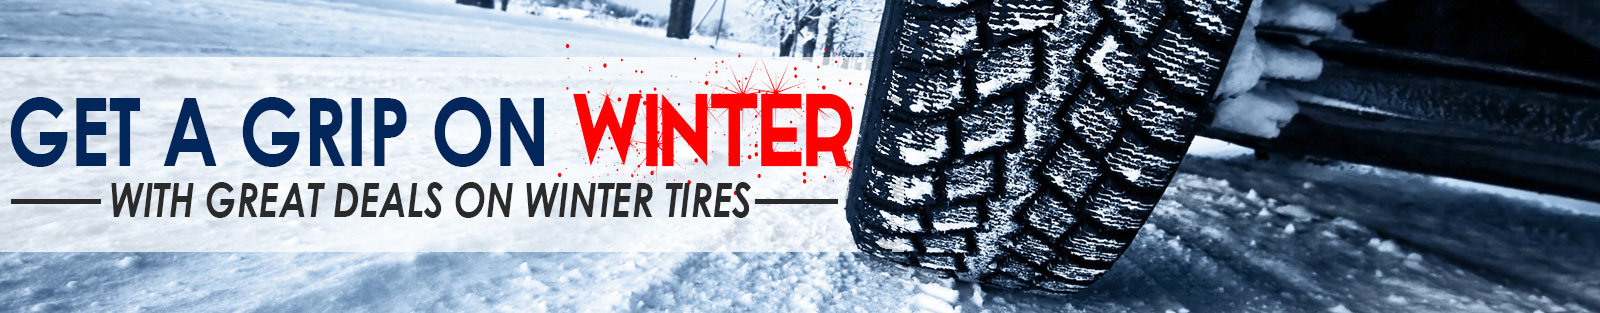 Get a grip on winter with great deals on Winter Tires London from Finch Auto Group